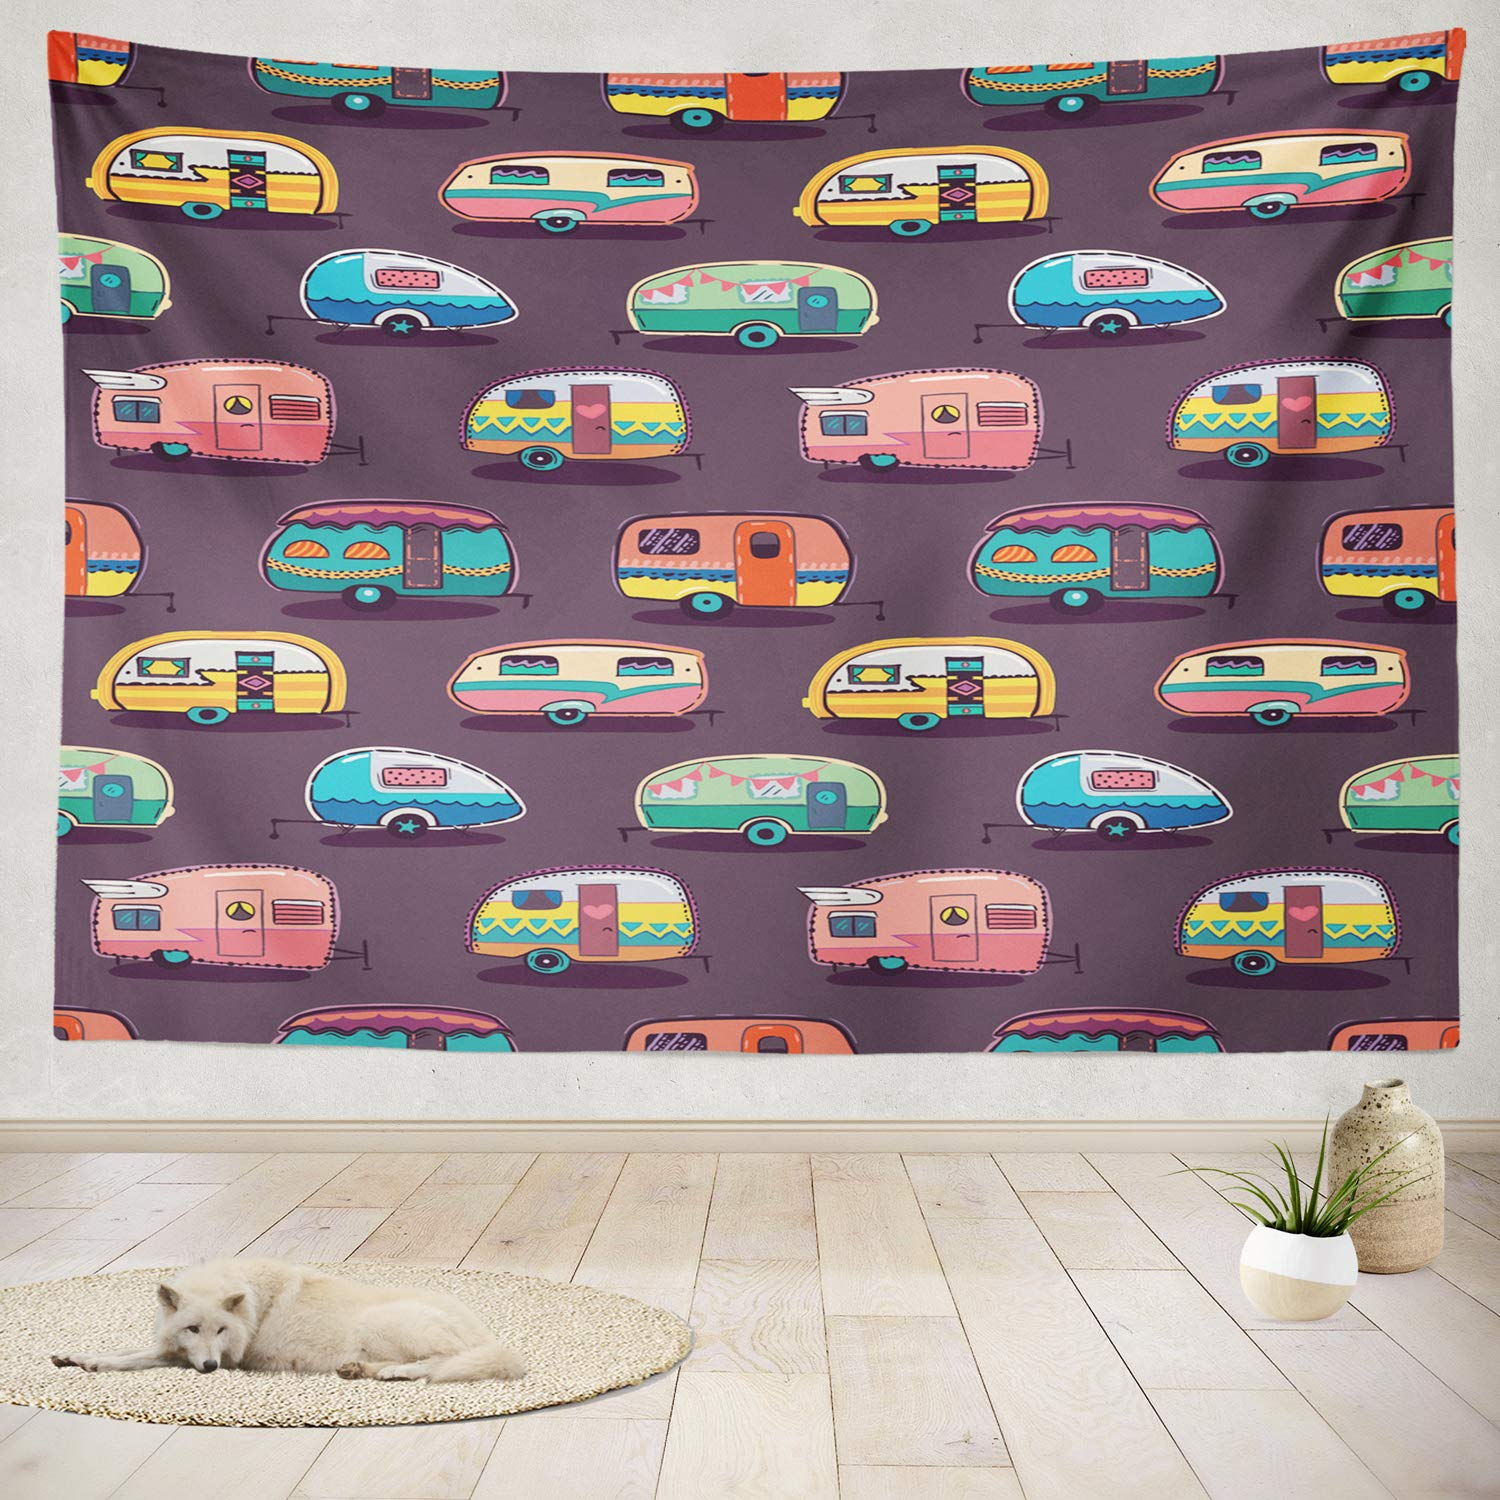 """ONELZ Decor Collection, Mid Fifties Campers Camper Vintage Trailer Travel Adventure Camp Car Bedroom Living Room Dorm Wall Hanging Tapestry 60"""" L x 80"""" W Polyester & Polyester Blend"""